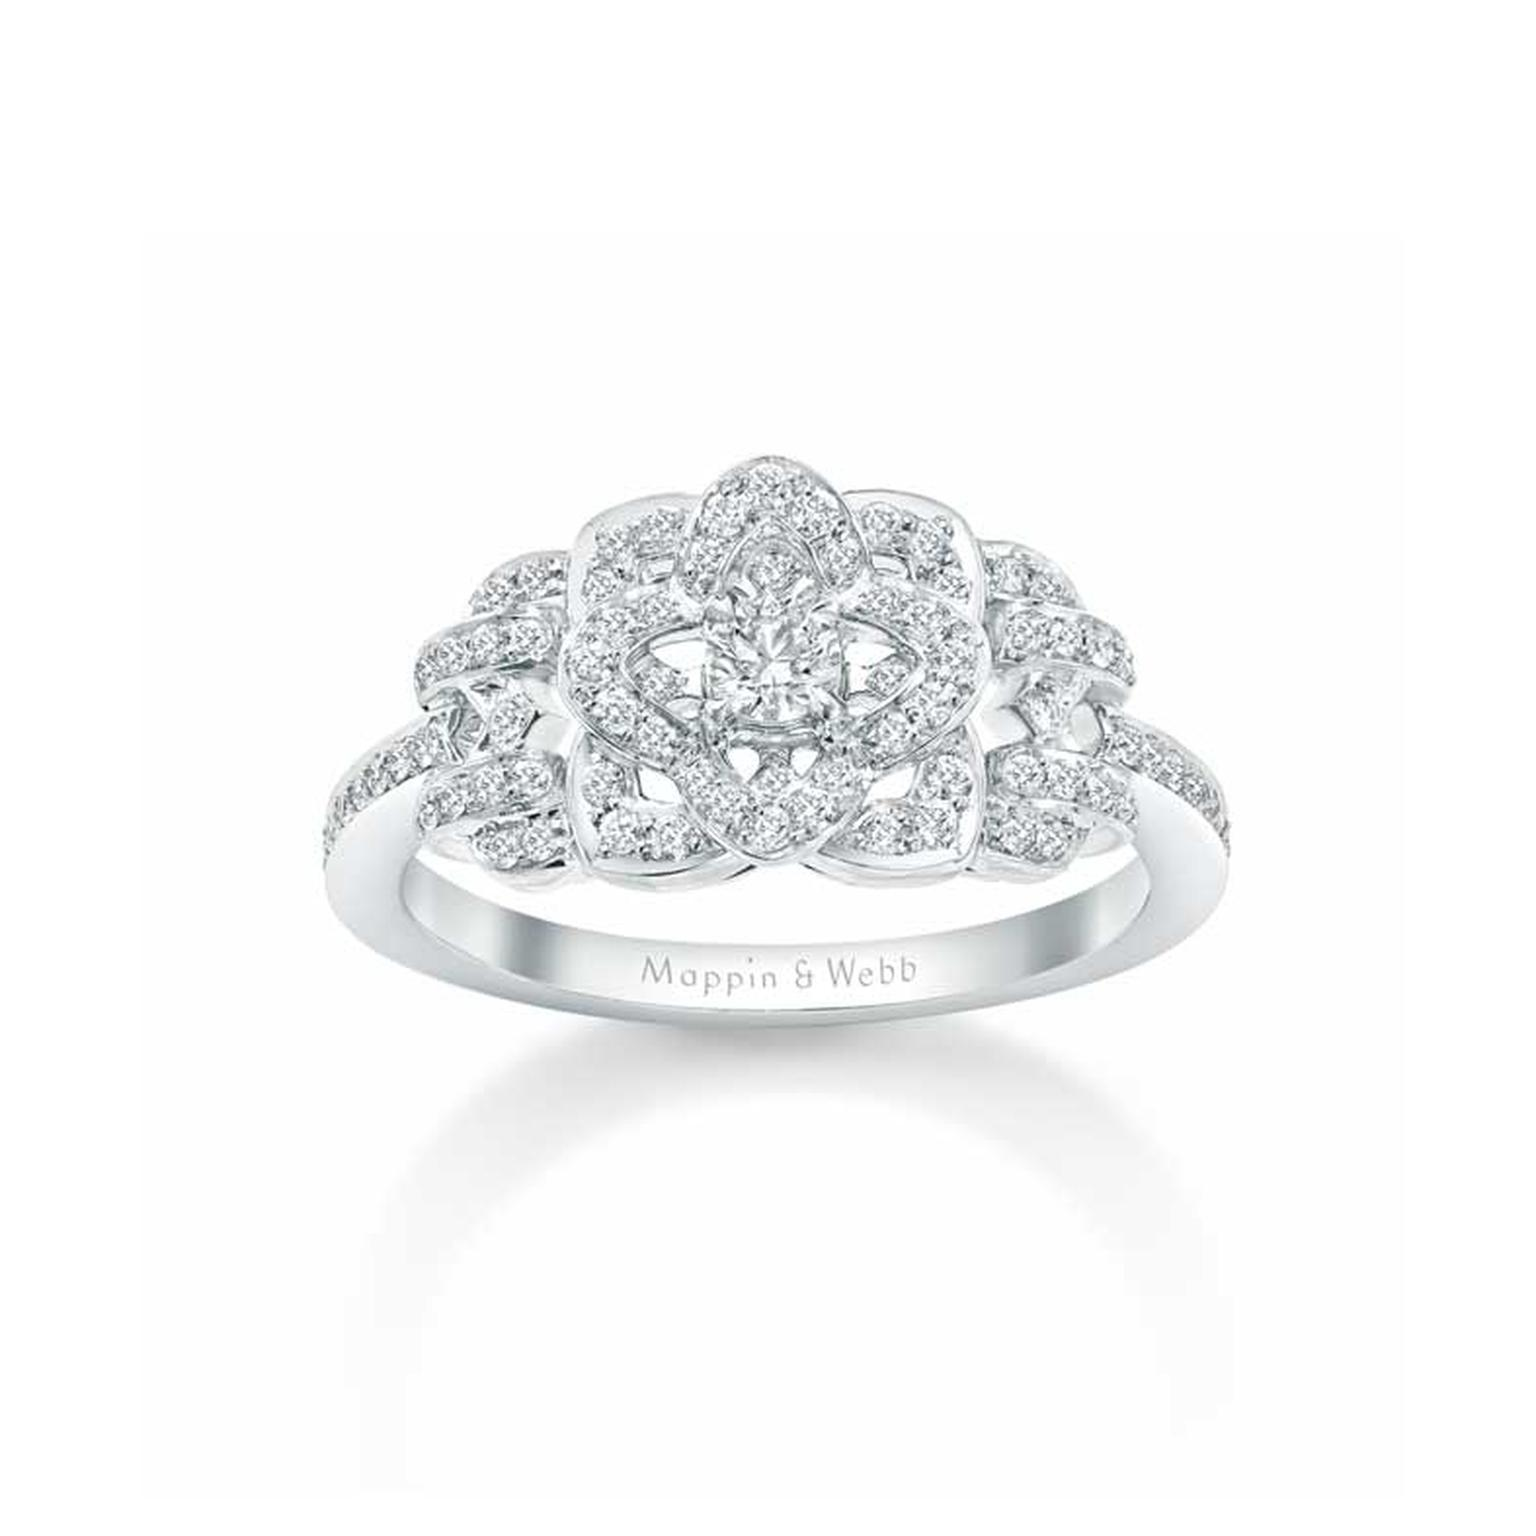 Mappin & Webb Floresco diamond engagement ring